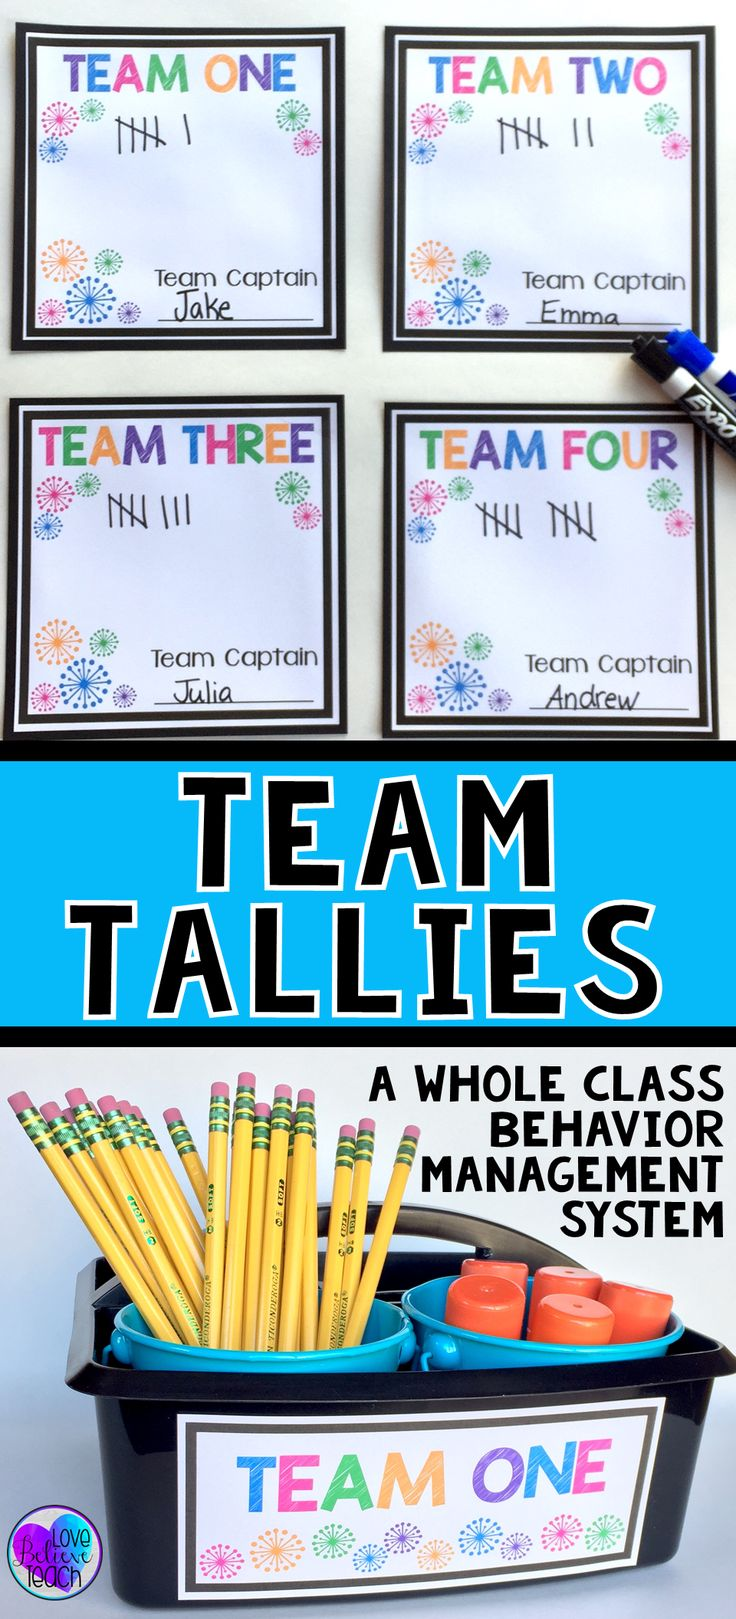 best ideas about effective teamwork great team team tallies a whole class behavior management system